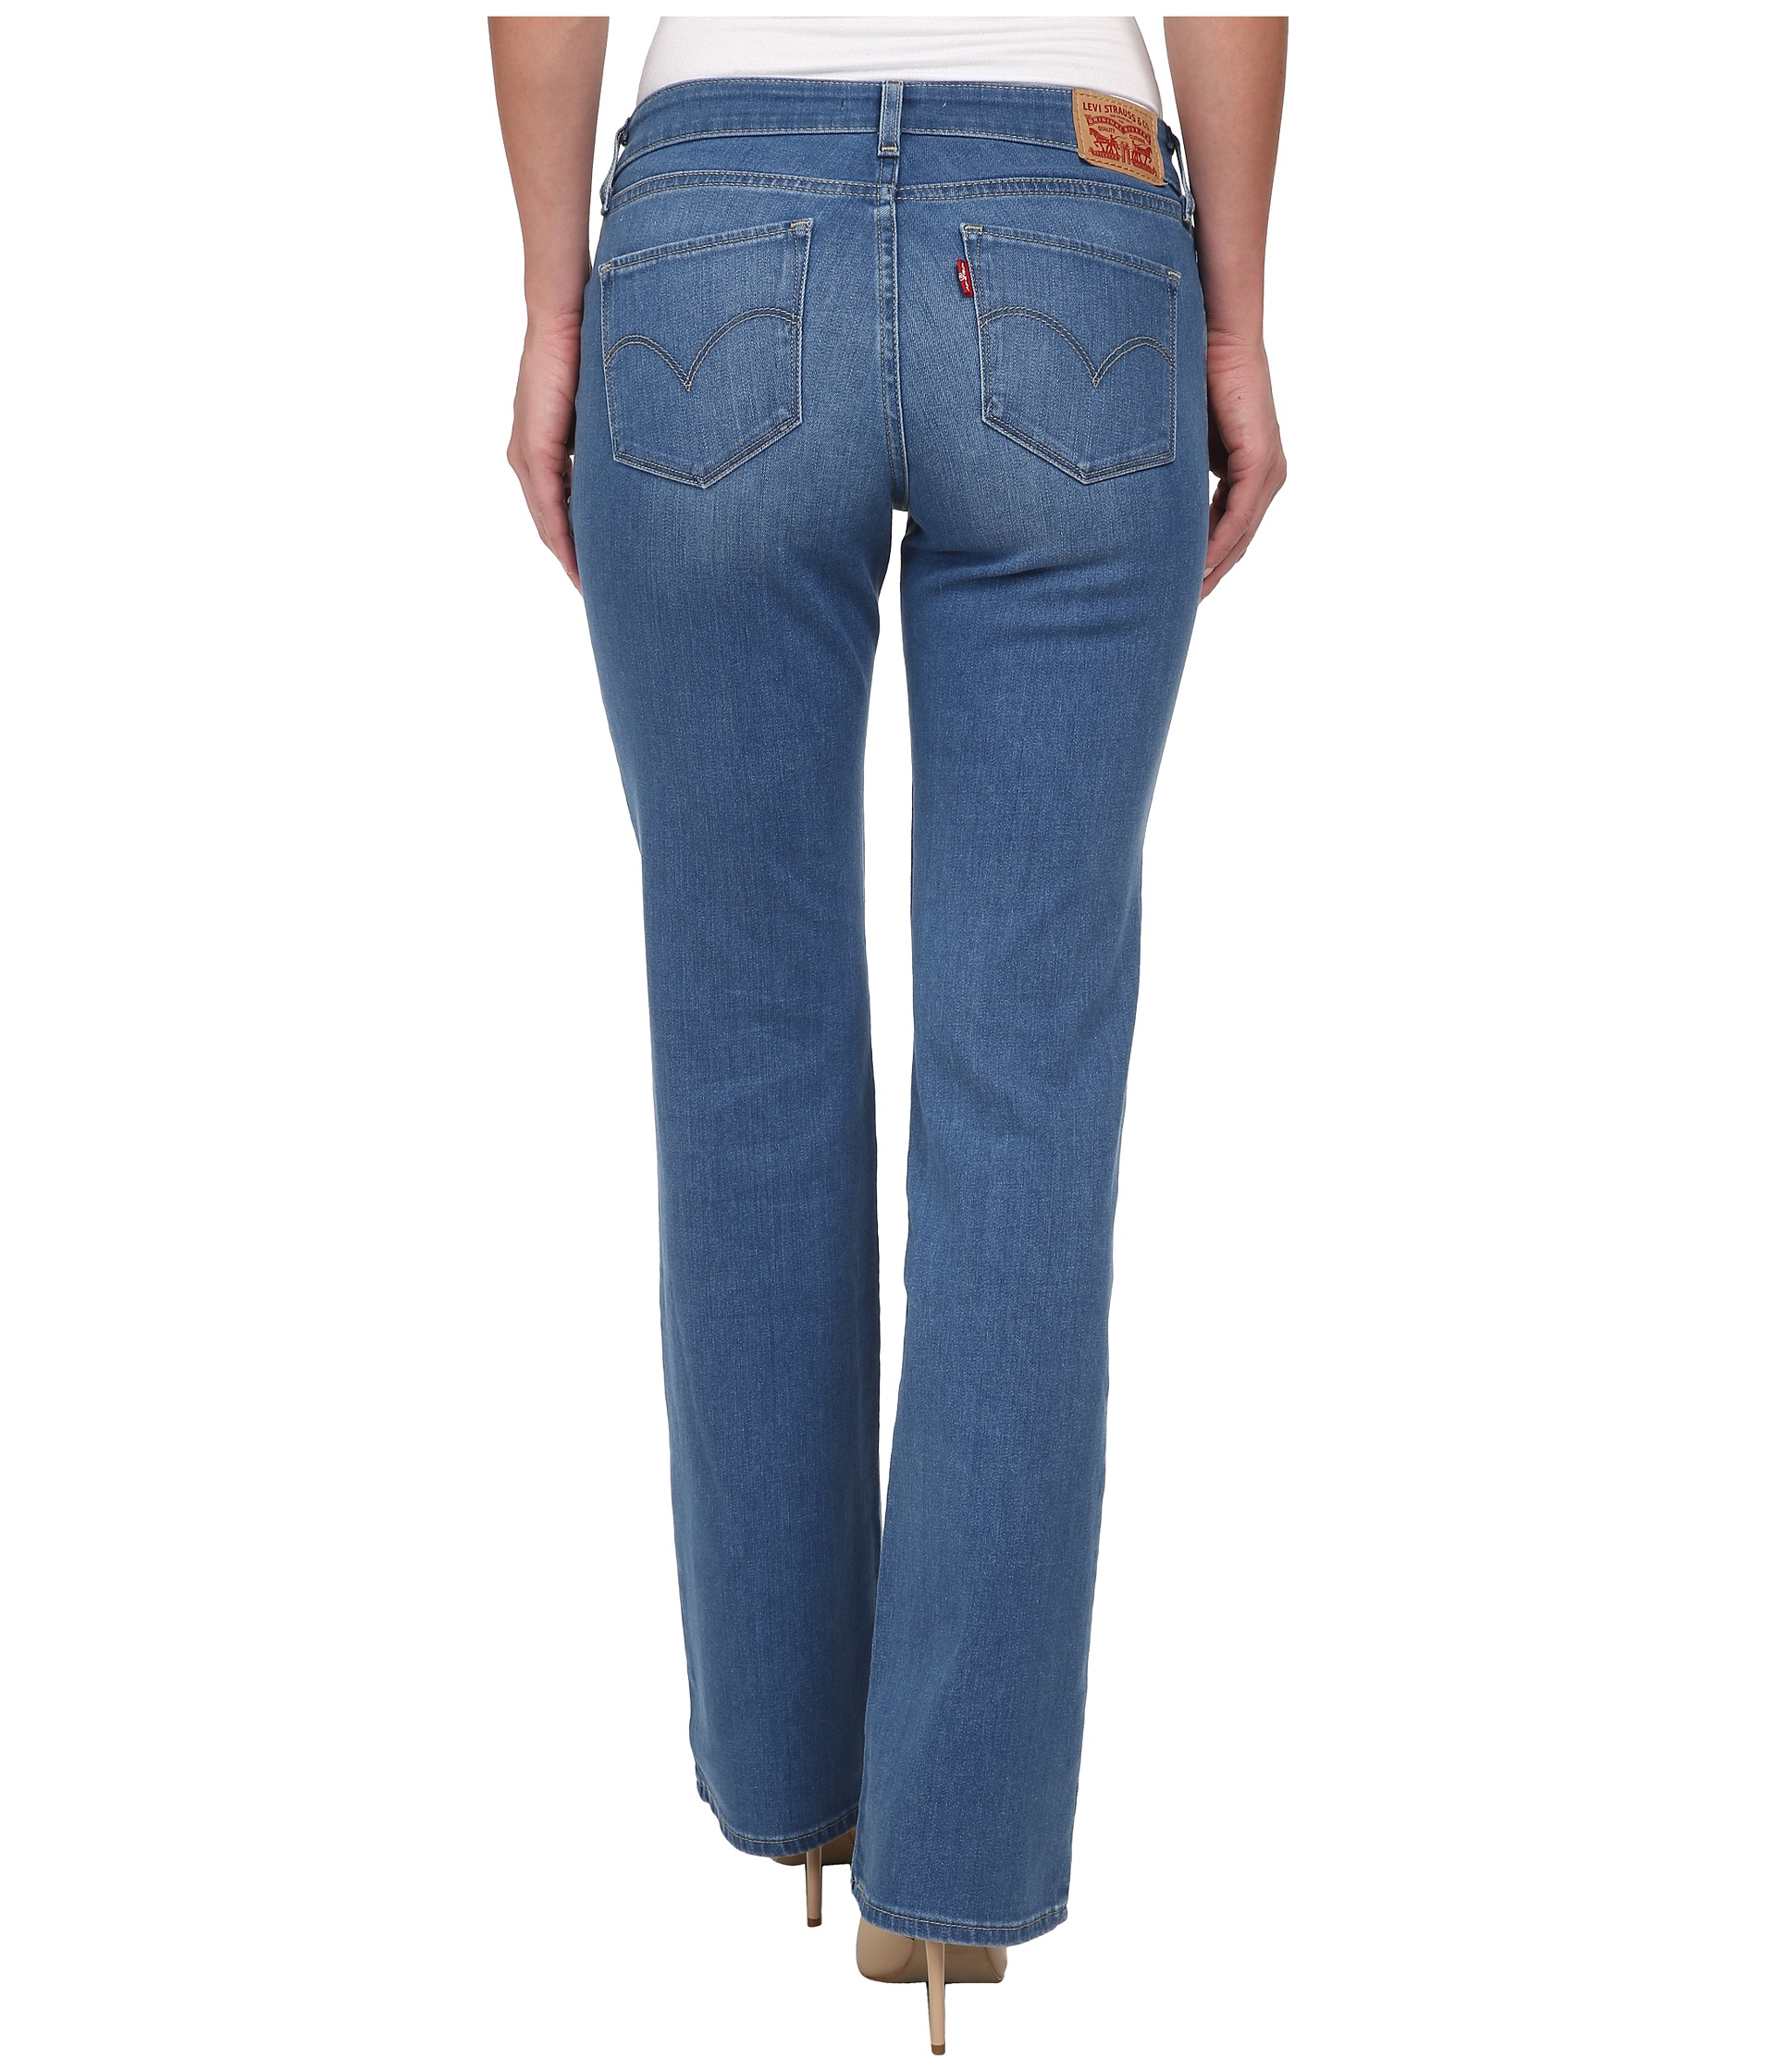 Ann Taylor LOFT Curvy Trouser Jeans in Dark Rinse ($) If you want to do a slim-fit,